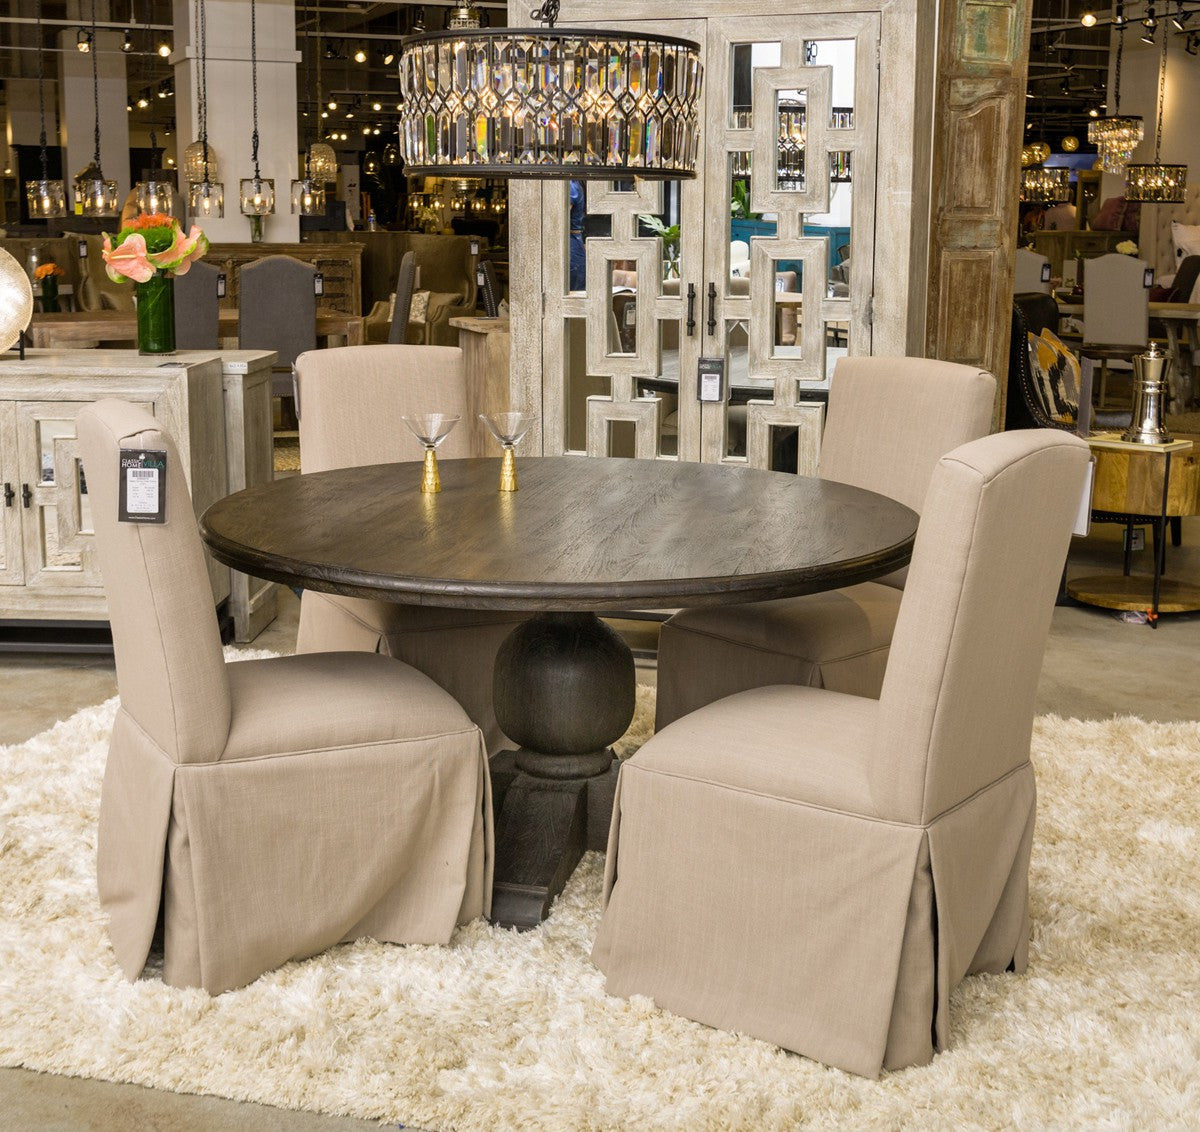 Classic Home Ventura 60 Espresso Dining Table 51010900 Pearl Igloo .